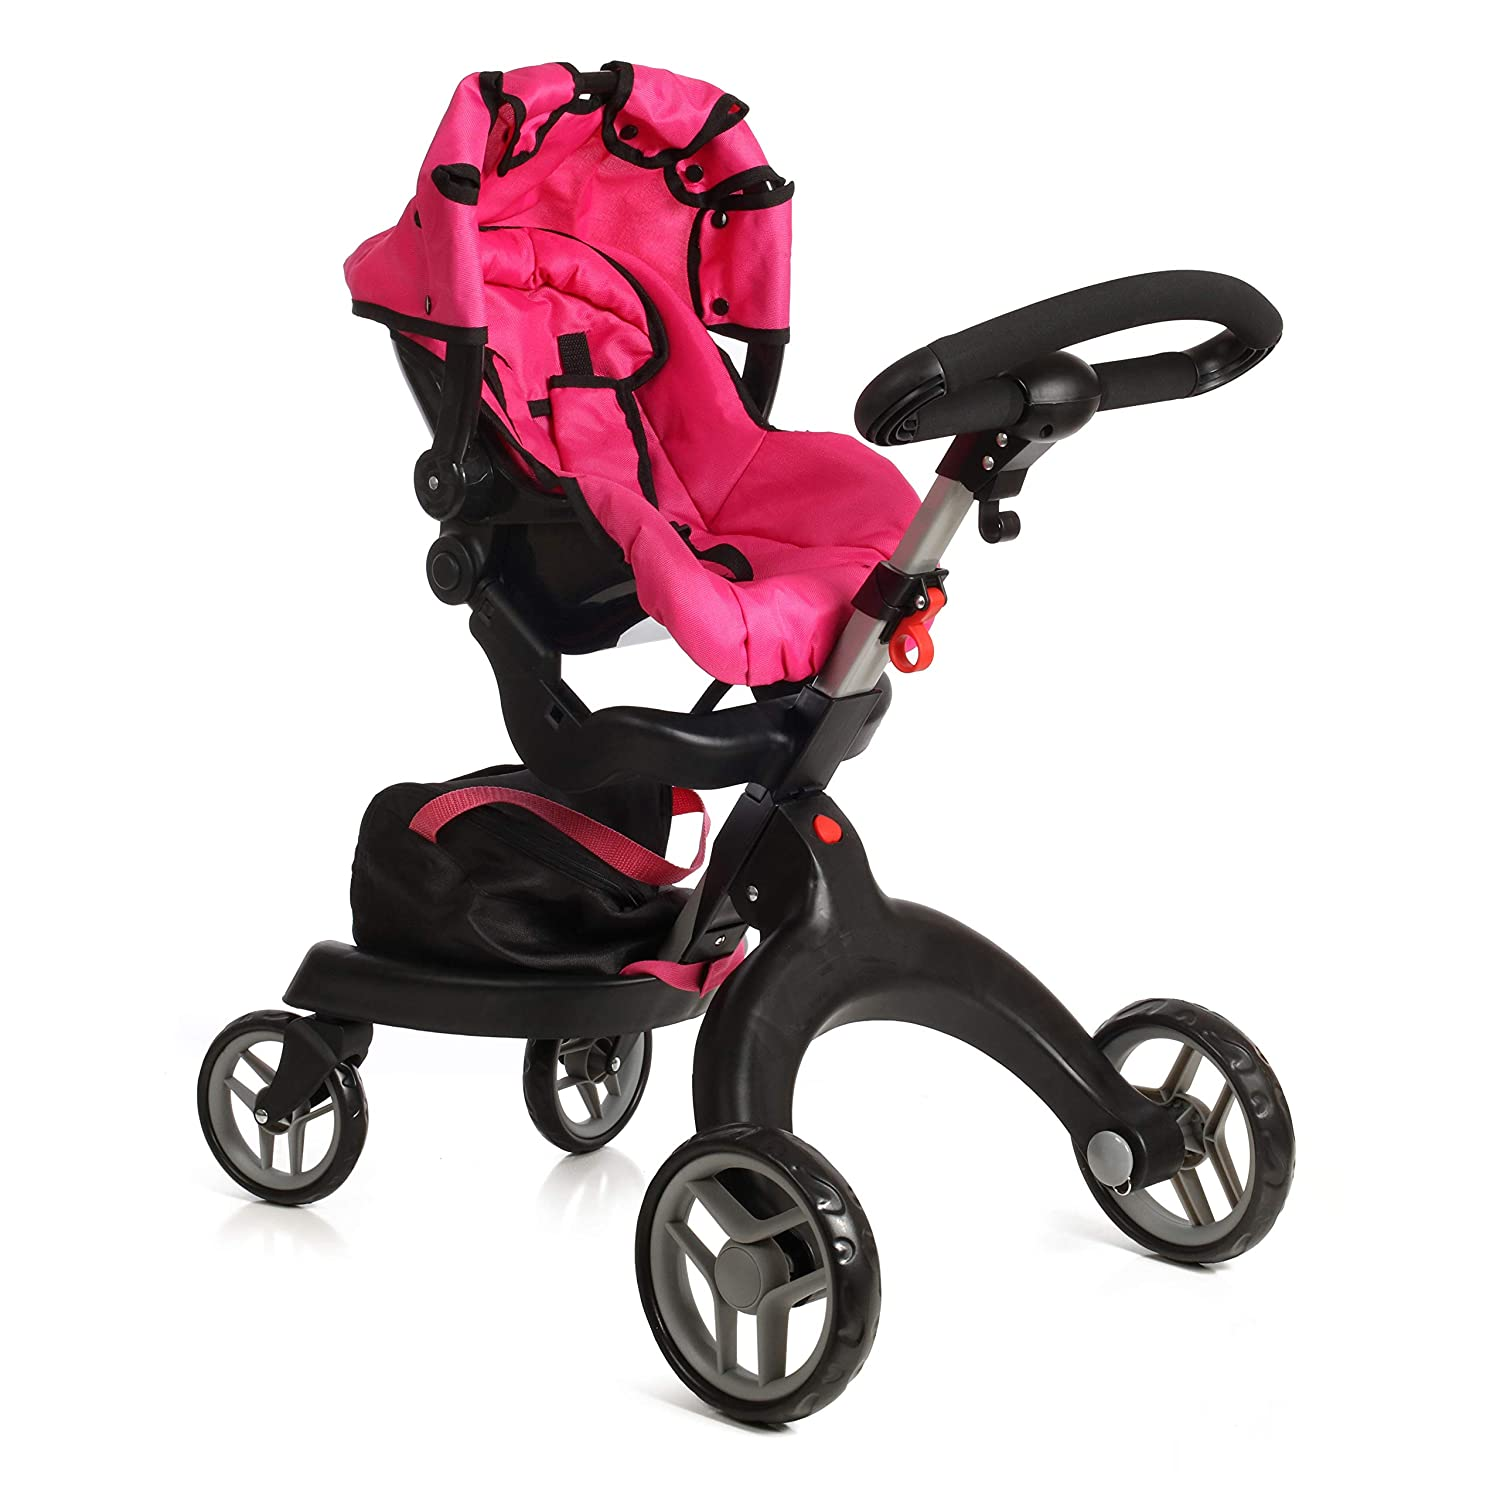 31 Tall Mommy /& Me SoCutie Doll Stroller with Swiveling Wheels and Adjustable Handle Carriage Bag Included Mommy /& Me Doll Collection 9332H